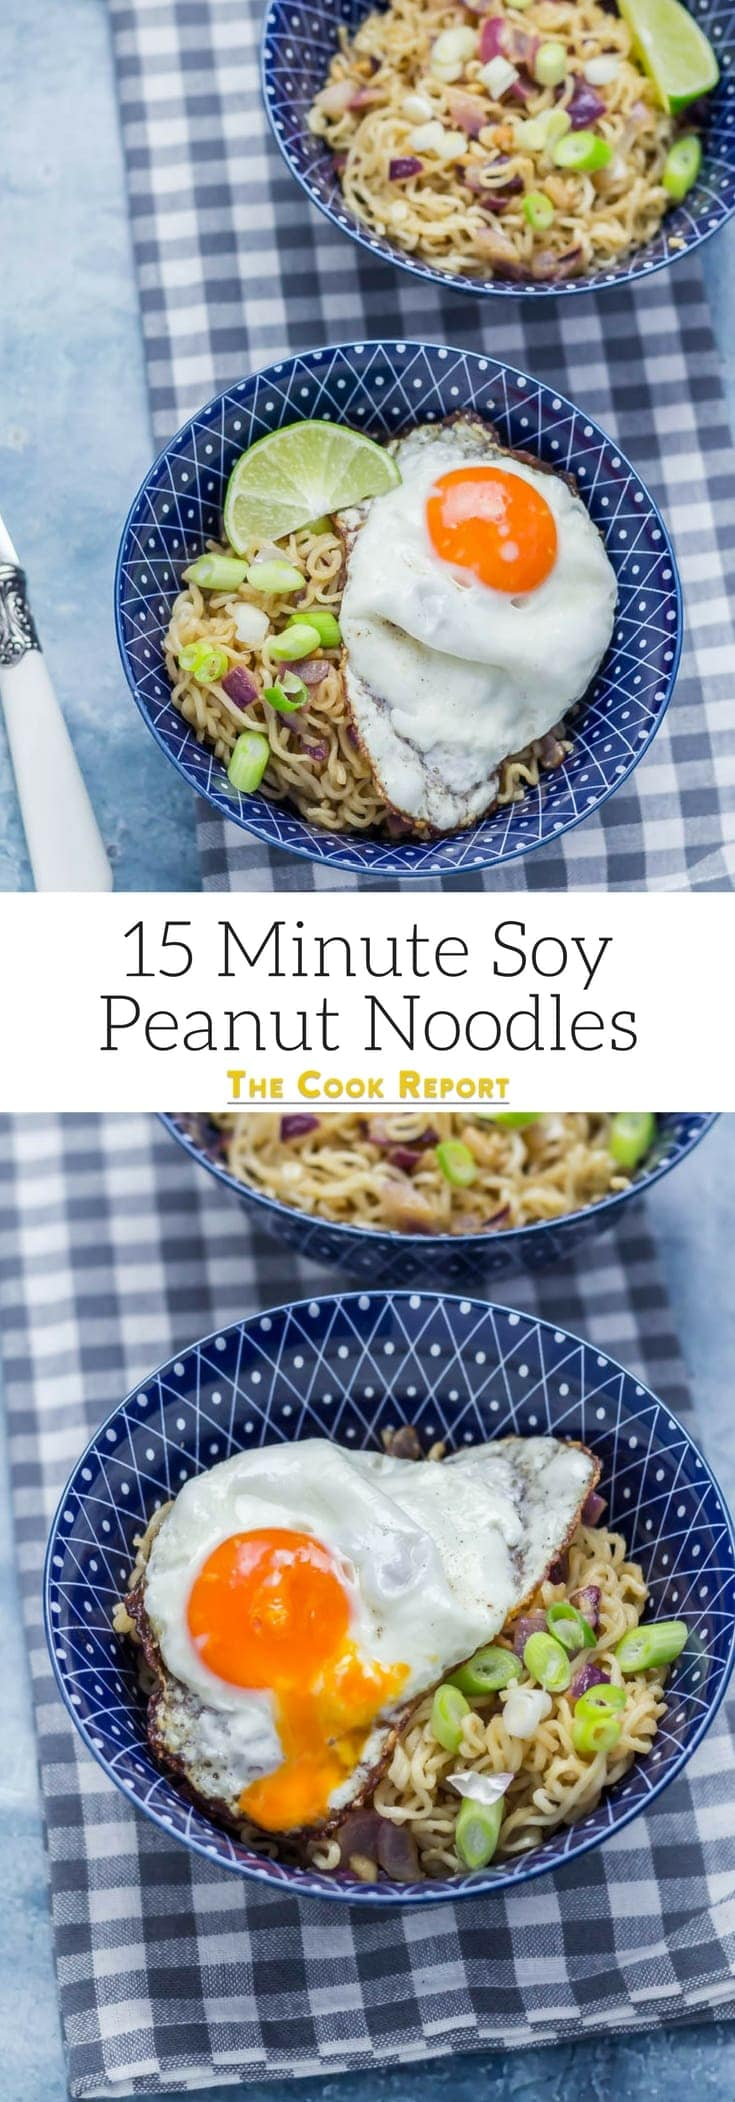 15 Minute Soy Peanut Noodles. These soy peanut noodles are ridiculously easy to make and are on the table in 15 minutes! Even better, you'll probably already have most of the ingredients on hand. #noodles #recipe #asianfood #peanutnoodles